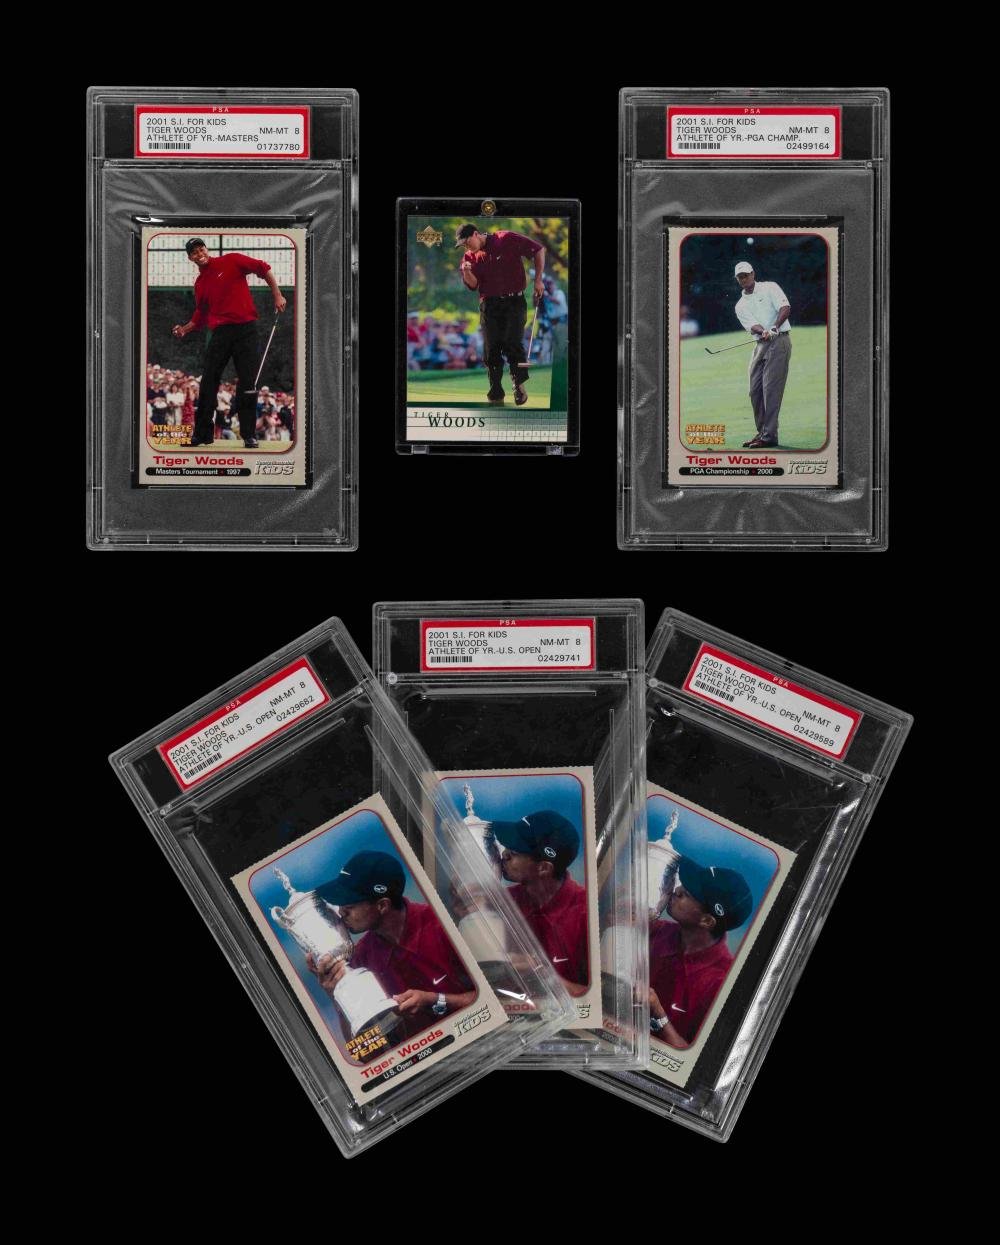 A Group of Six 2001 Tiger Woods Golf Cards